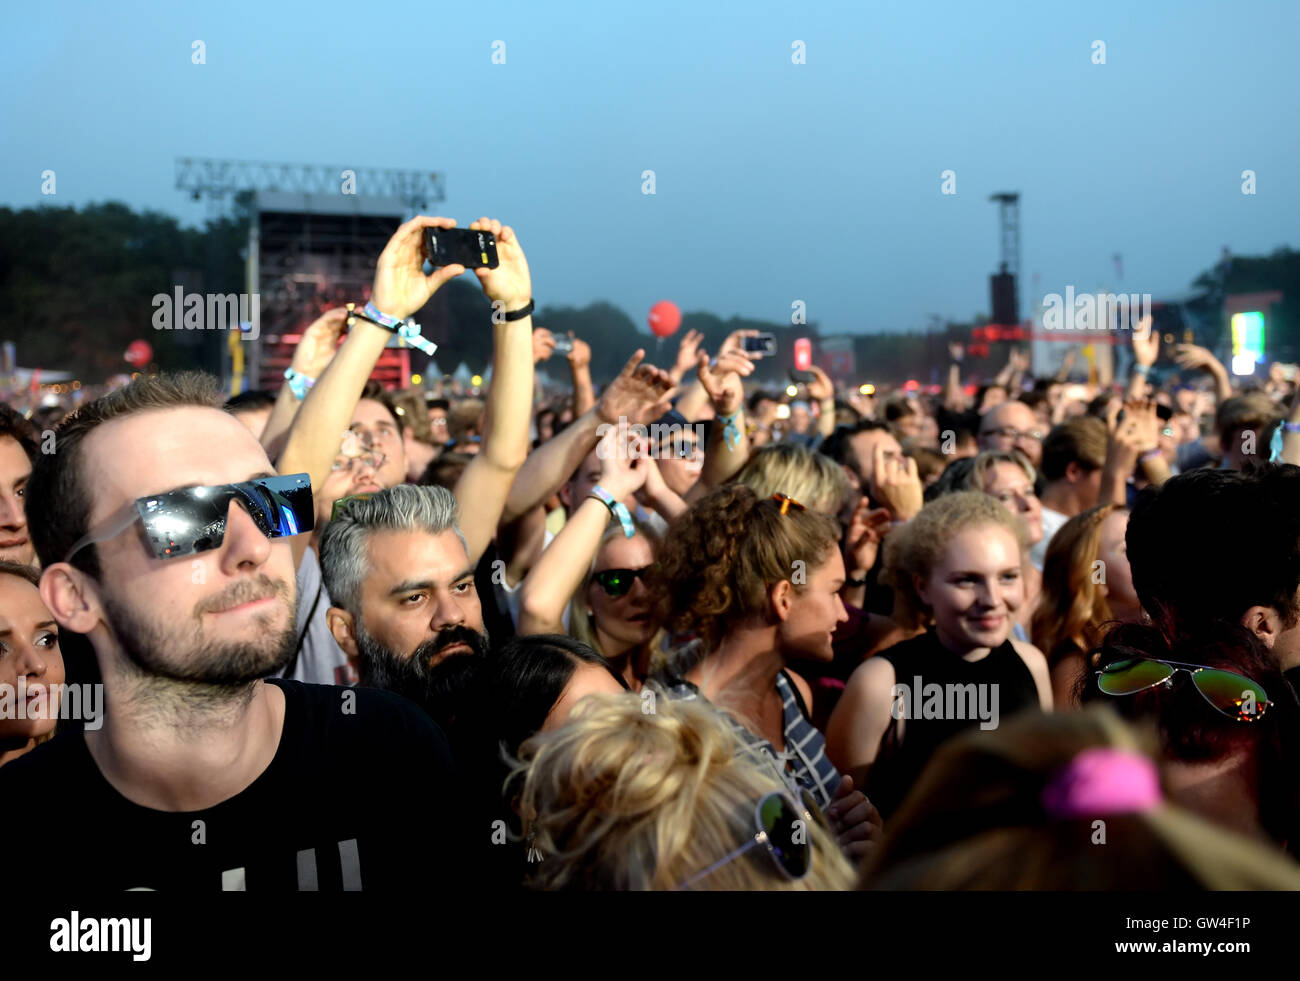 Berlin, Germany. 10th Sep, 2016. People celebrating during the performance of Paul Kalkbrenner at the music festival - Stock Image